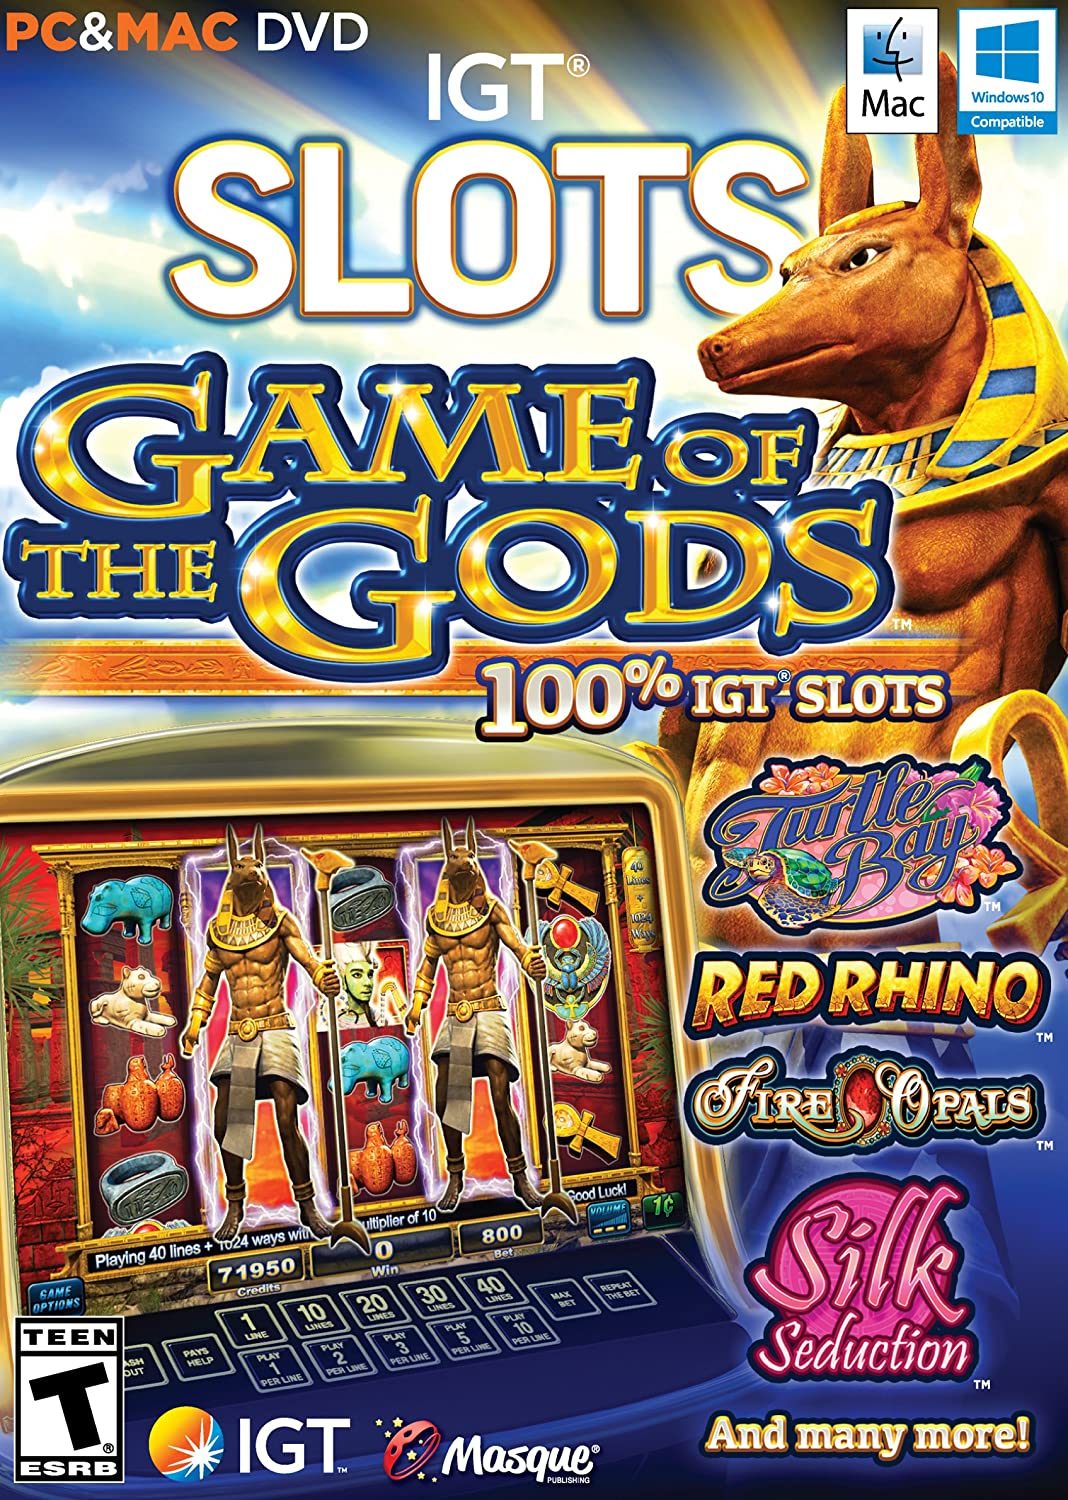 IGT Slots: games of the gods